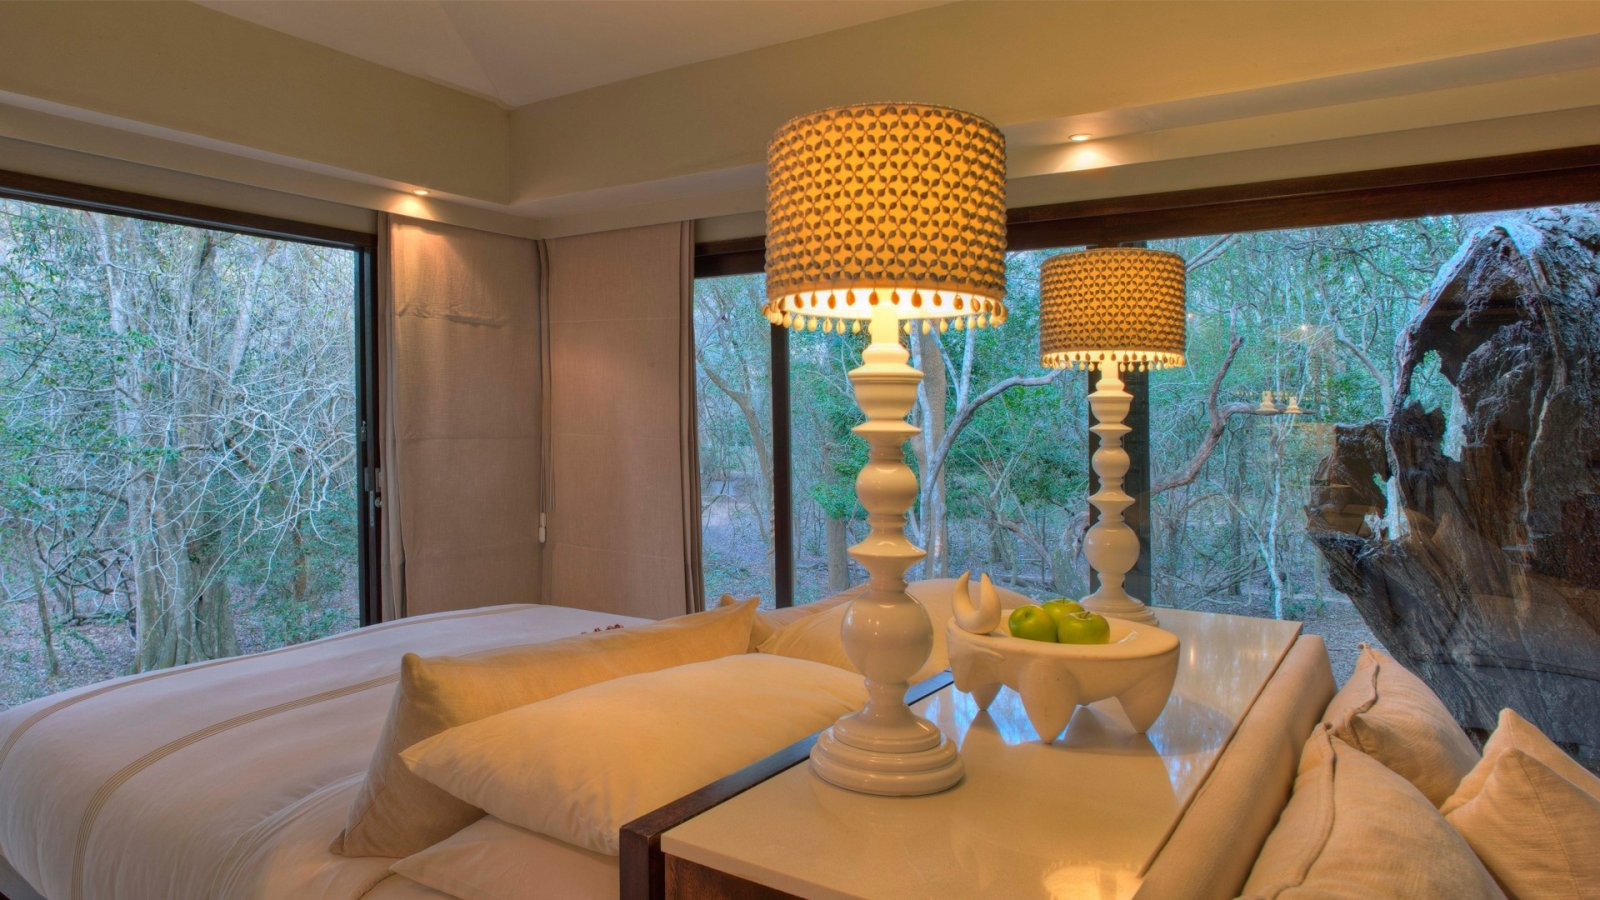 glass-windows-surround-bedroom-at-andbeyond-phinda-forest-lodge-on-a-luxury-safari-in-south-africa.jpg